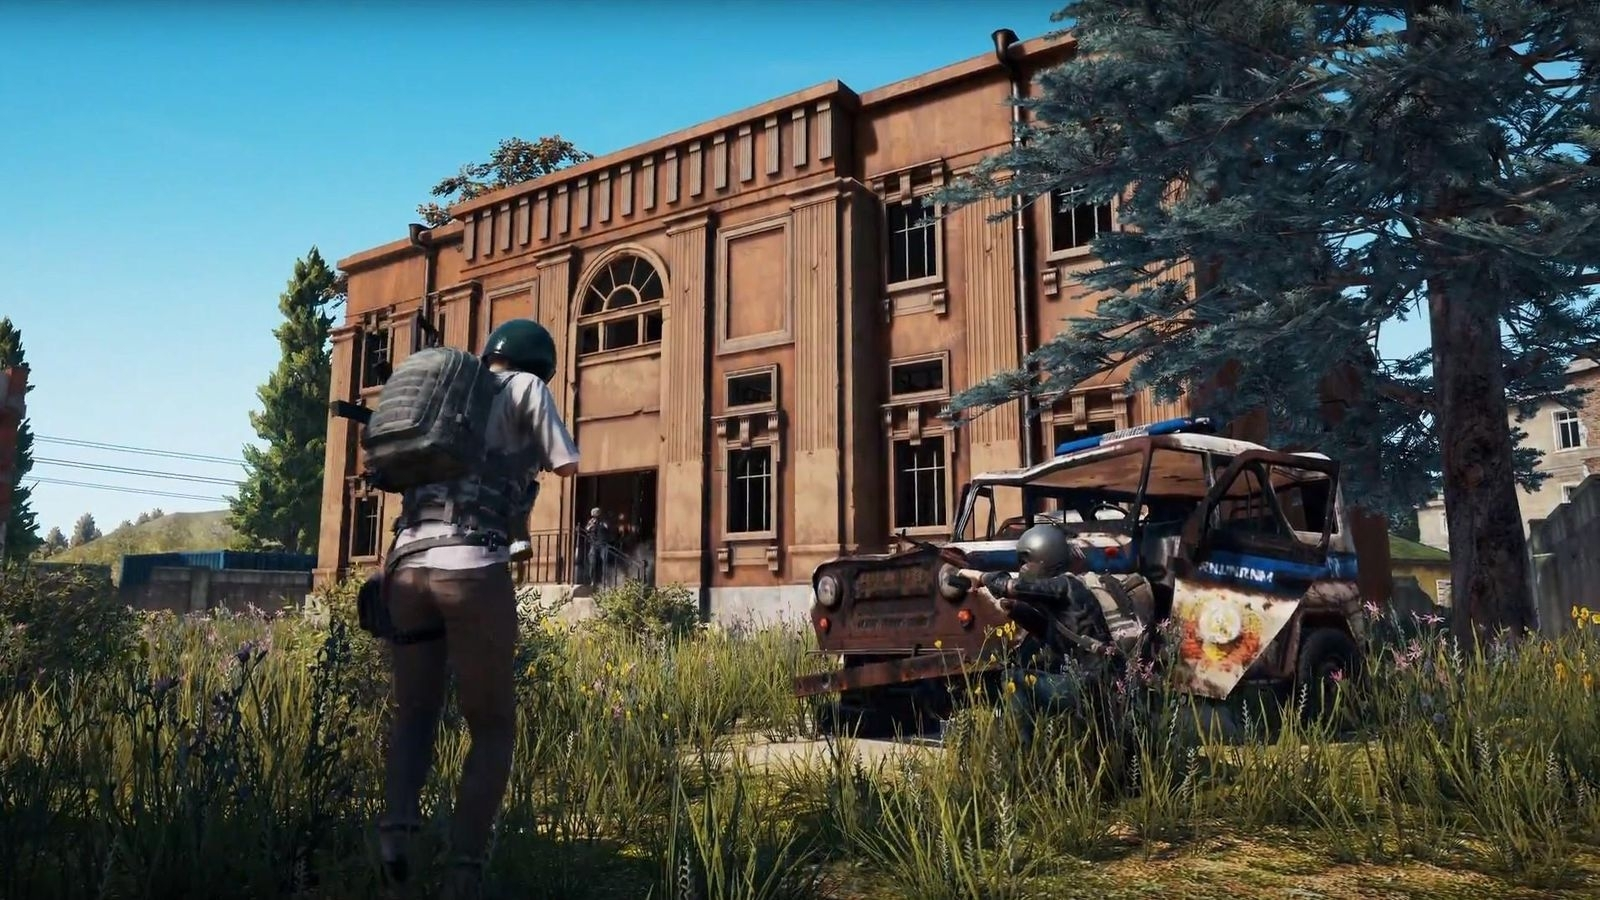 Pubg Wallpaper Ps4: PlayerUnknown's Battlegrounds Developer Backtracks After